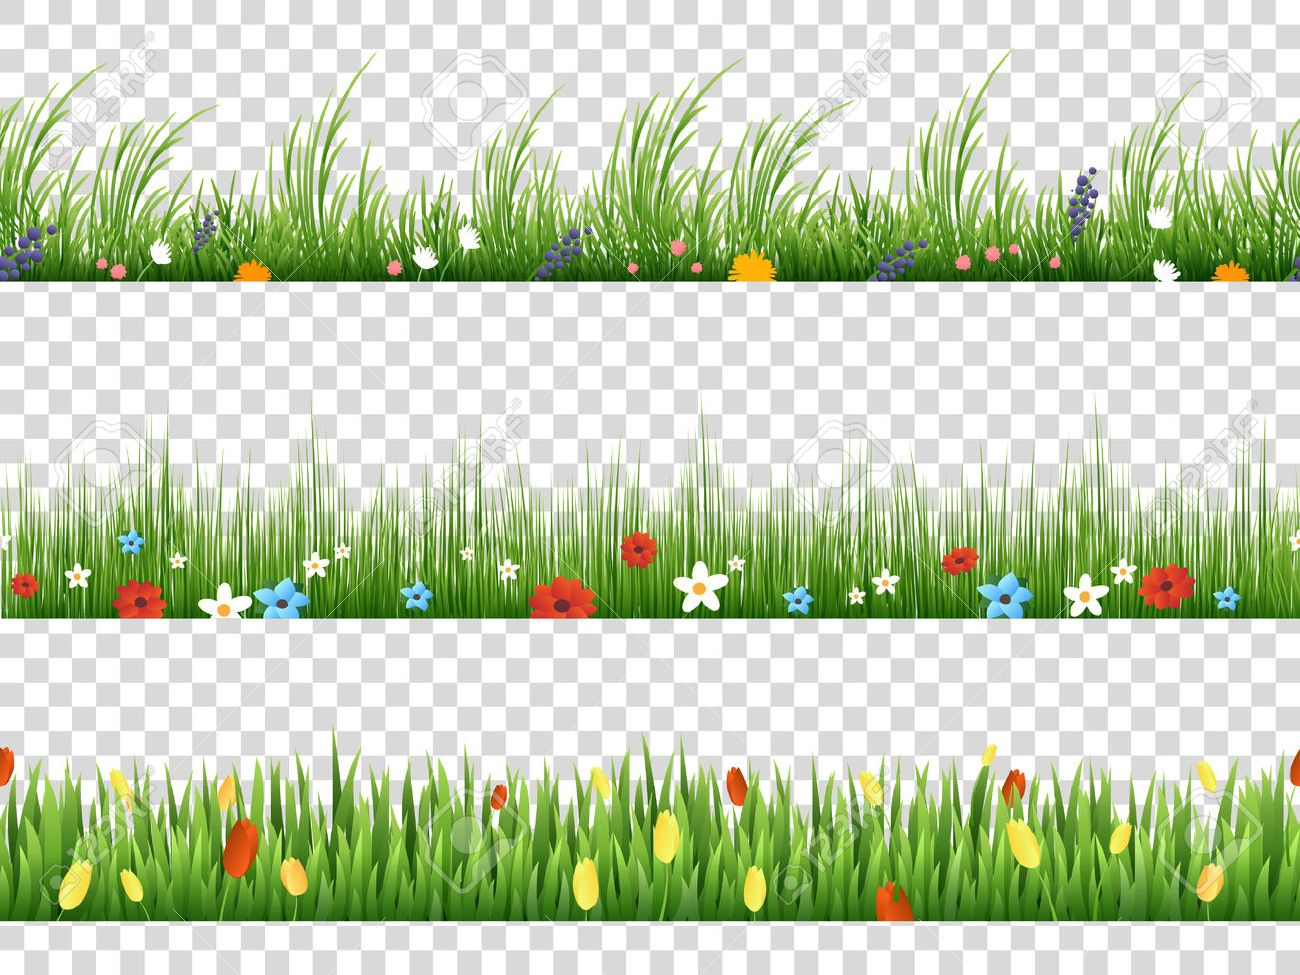 Vector green grass and spring flowers nature border patterns on transparent background vector illustration. Herbal and flower lawn border - 69789619